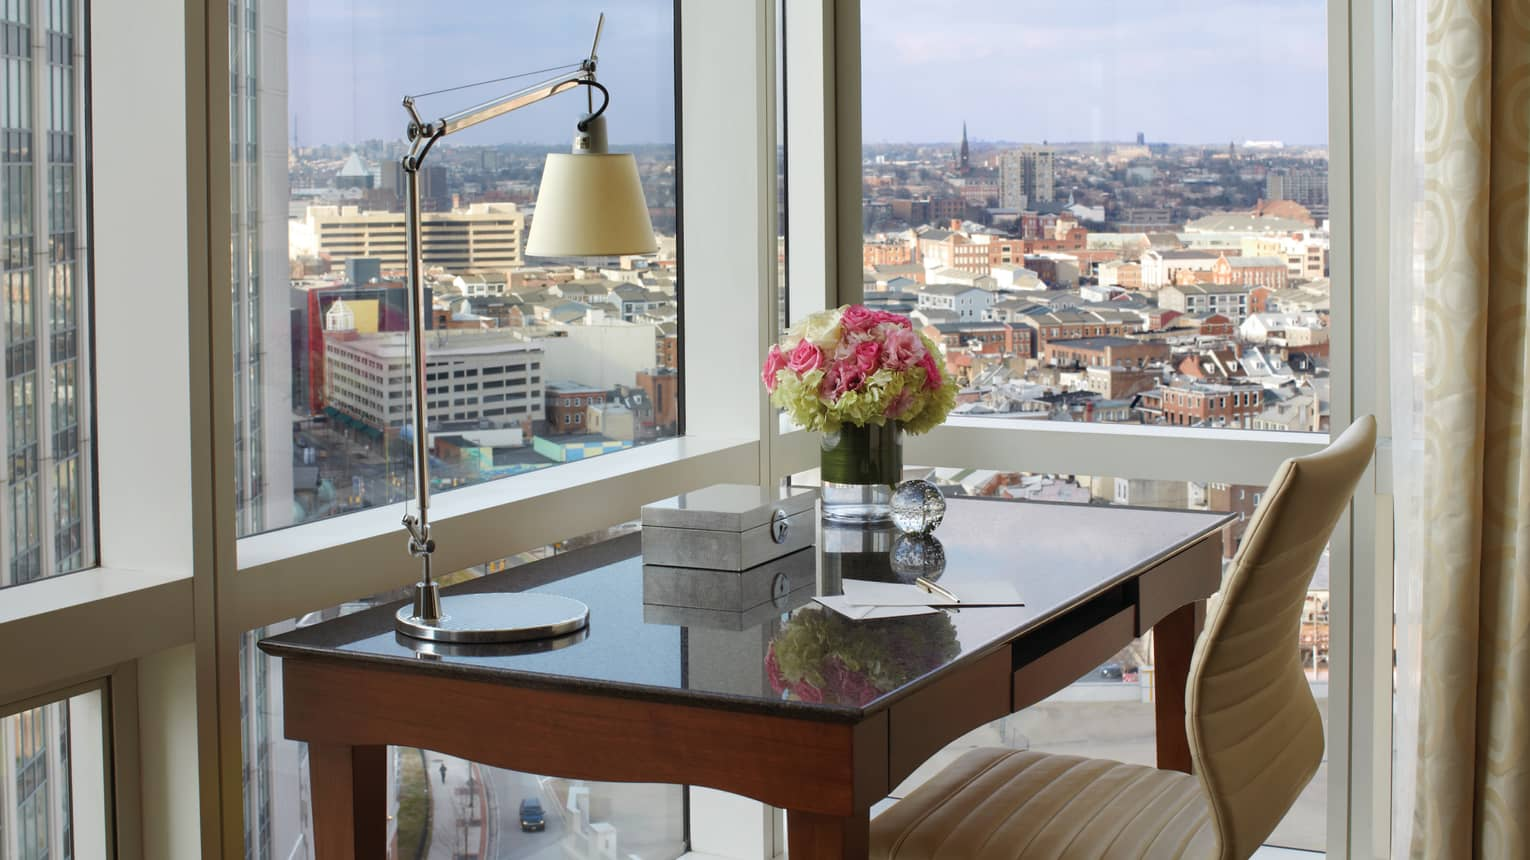 City-View Accessible Room writing desk with reading lamp, notepad, fresh flowers at window